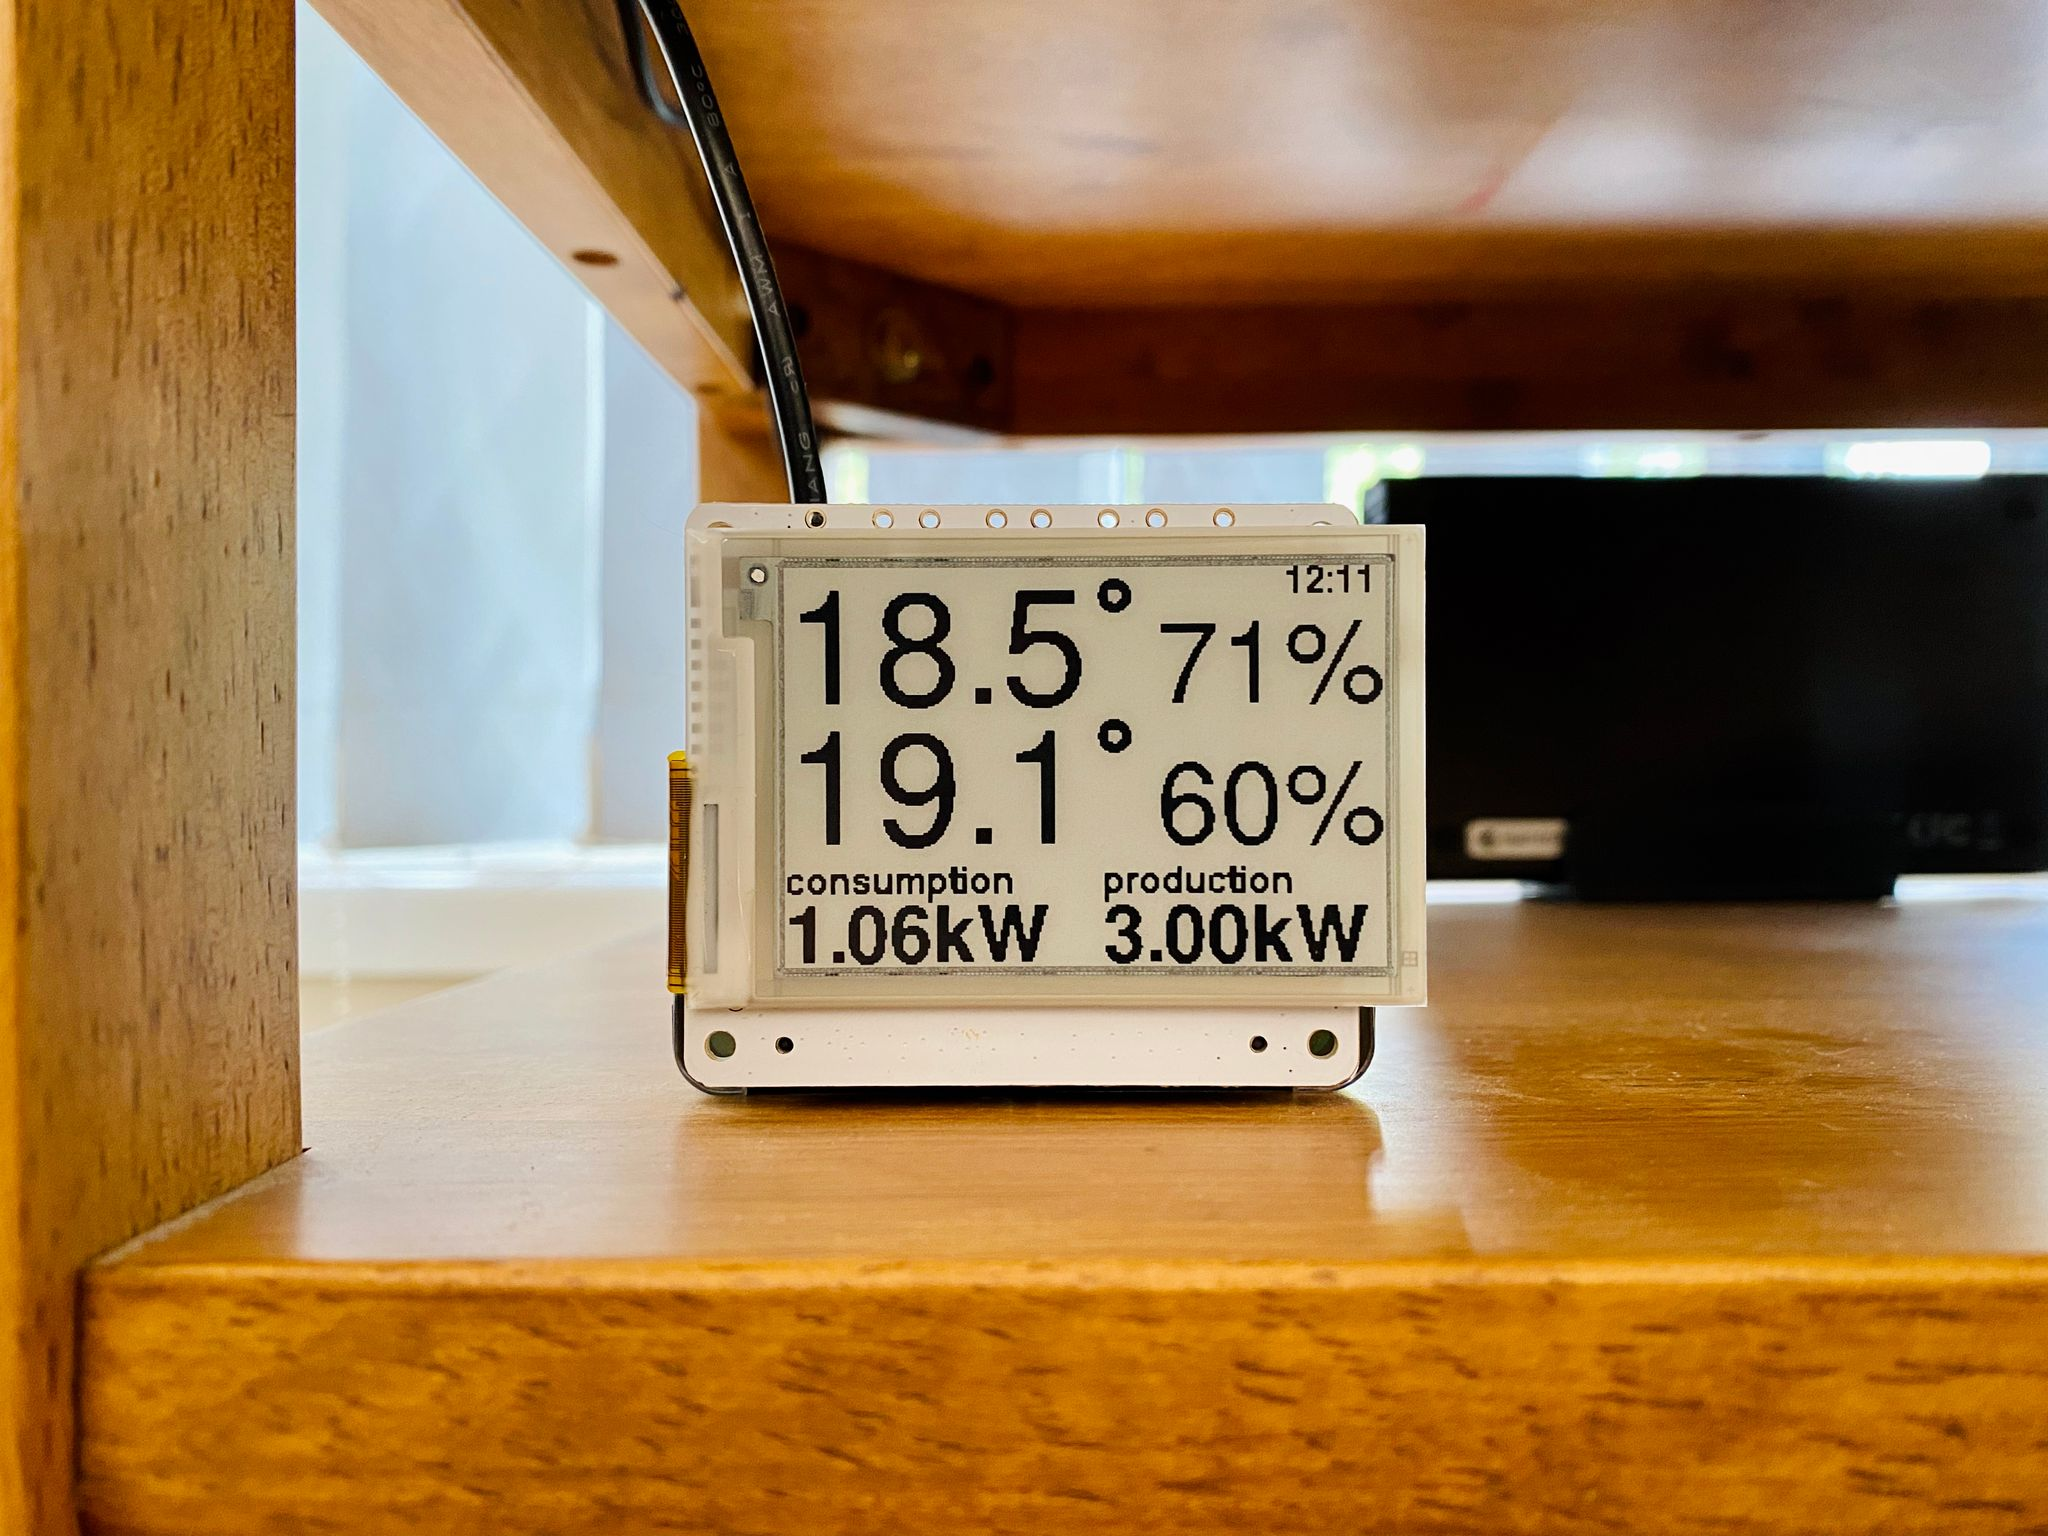 A photo of a small e-ink display on a shelf showing the current outdoor and indoor temperatures, plus current power consumption and production in kilowatts.